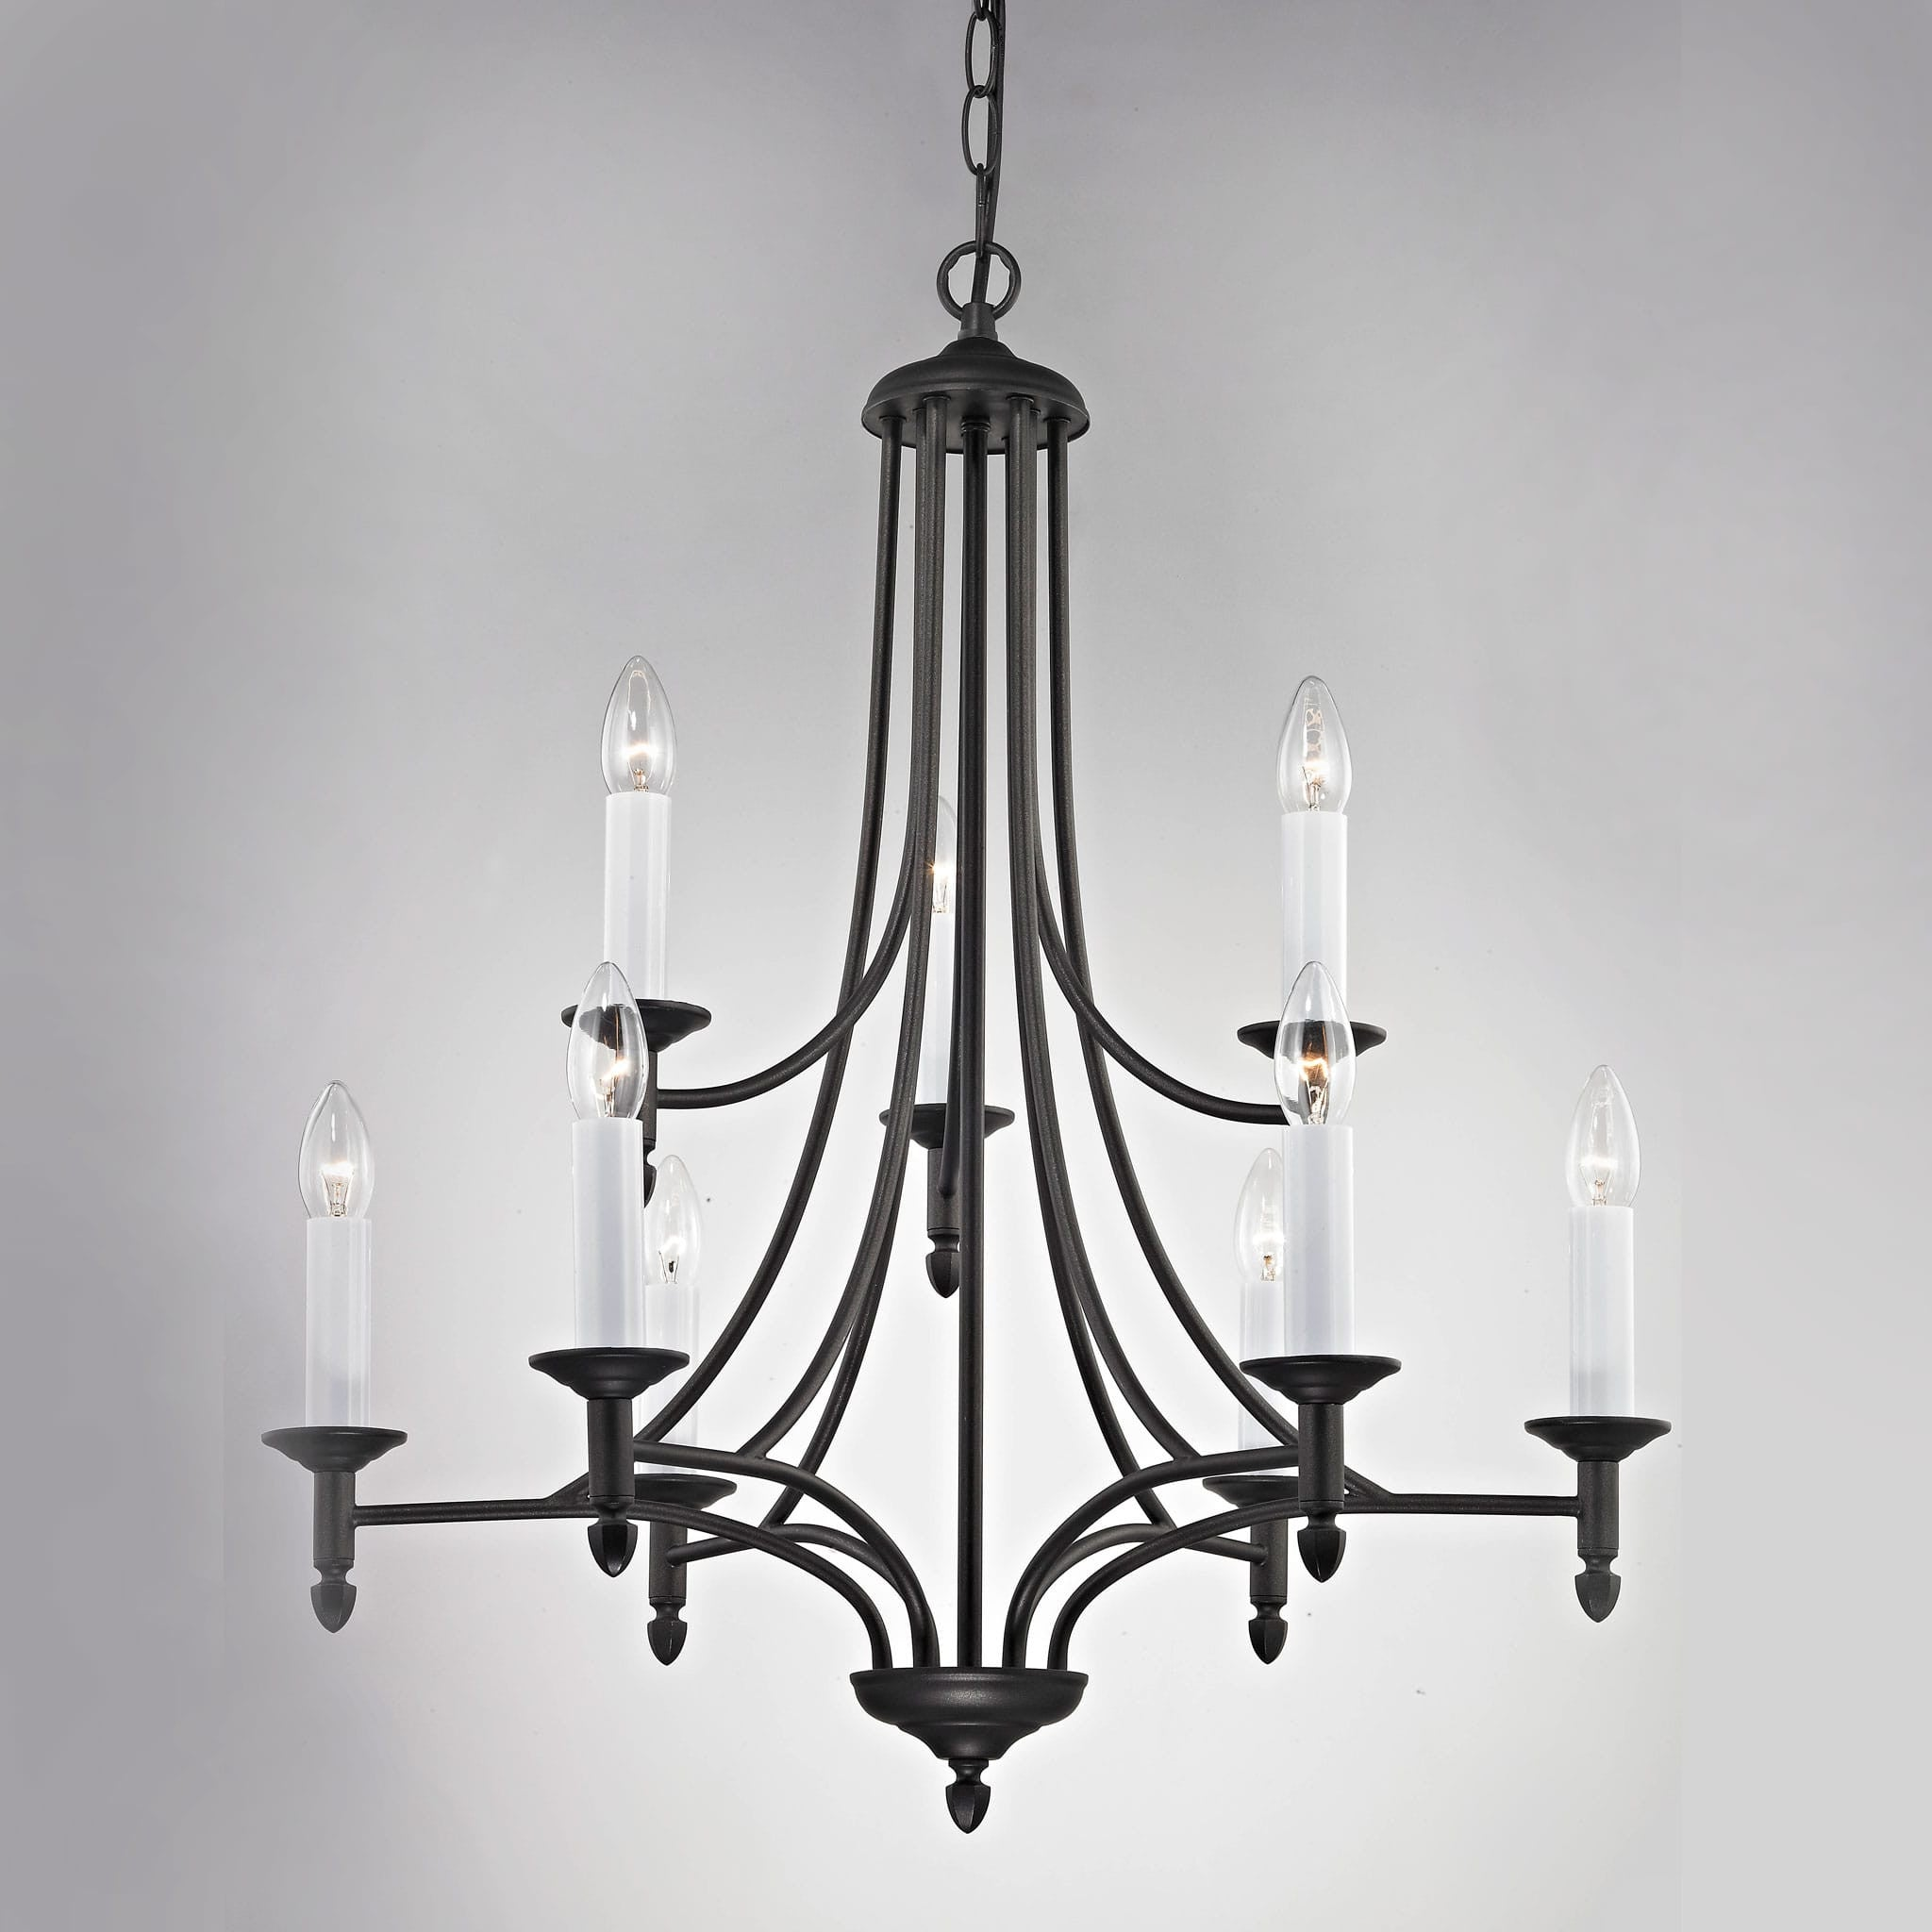 Impex canterbury 9 light black metal candle chandelier chandelier impex canterbury 9 light black metal candle chandelier smrr41120263blk arubaitofo Choice Image